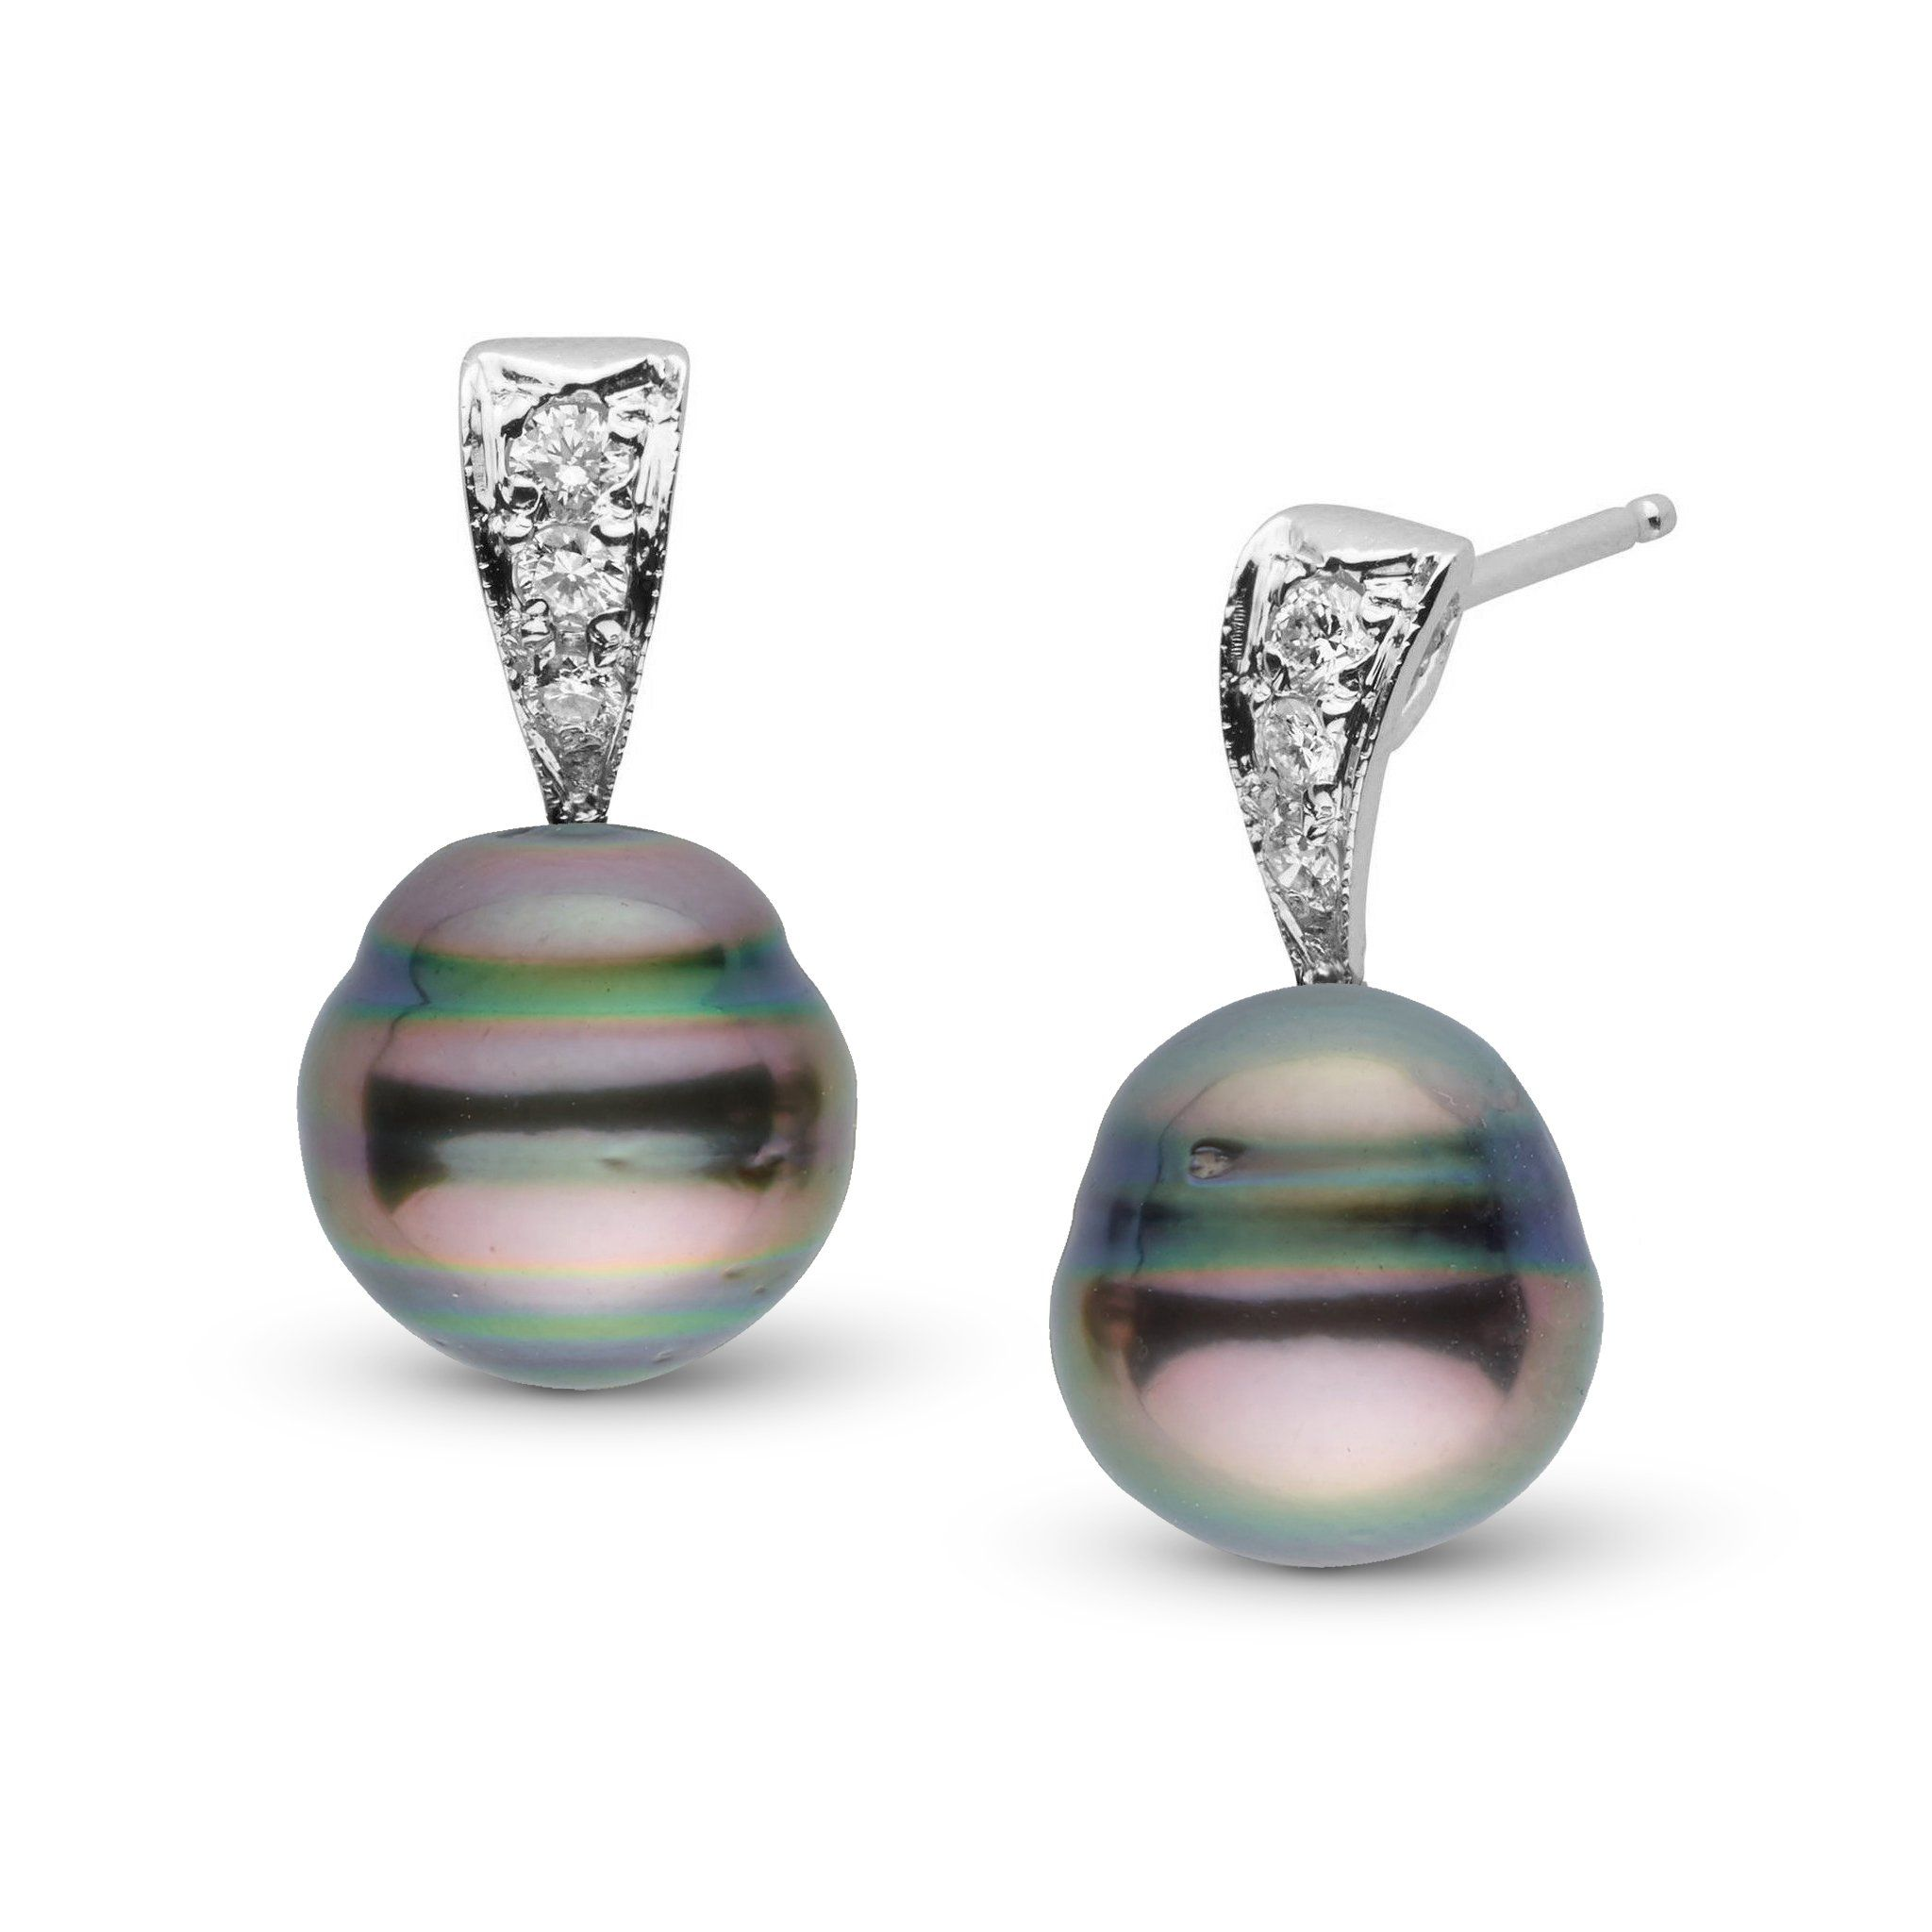 Desire Collection 8.0-9.0 mm Baroque Tahitian Pearl & Diamond Earrings